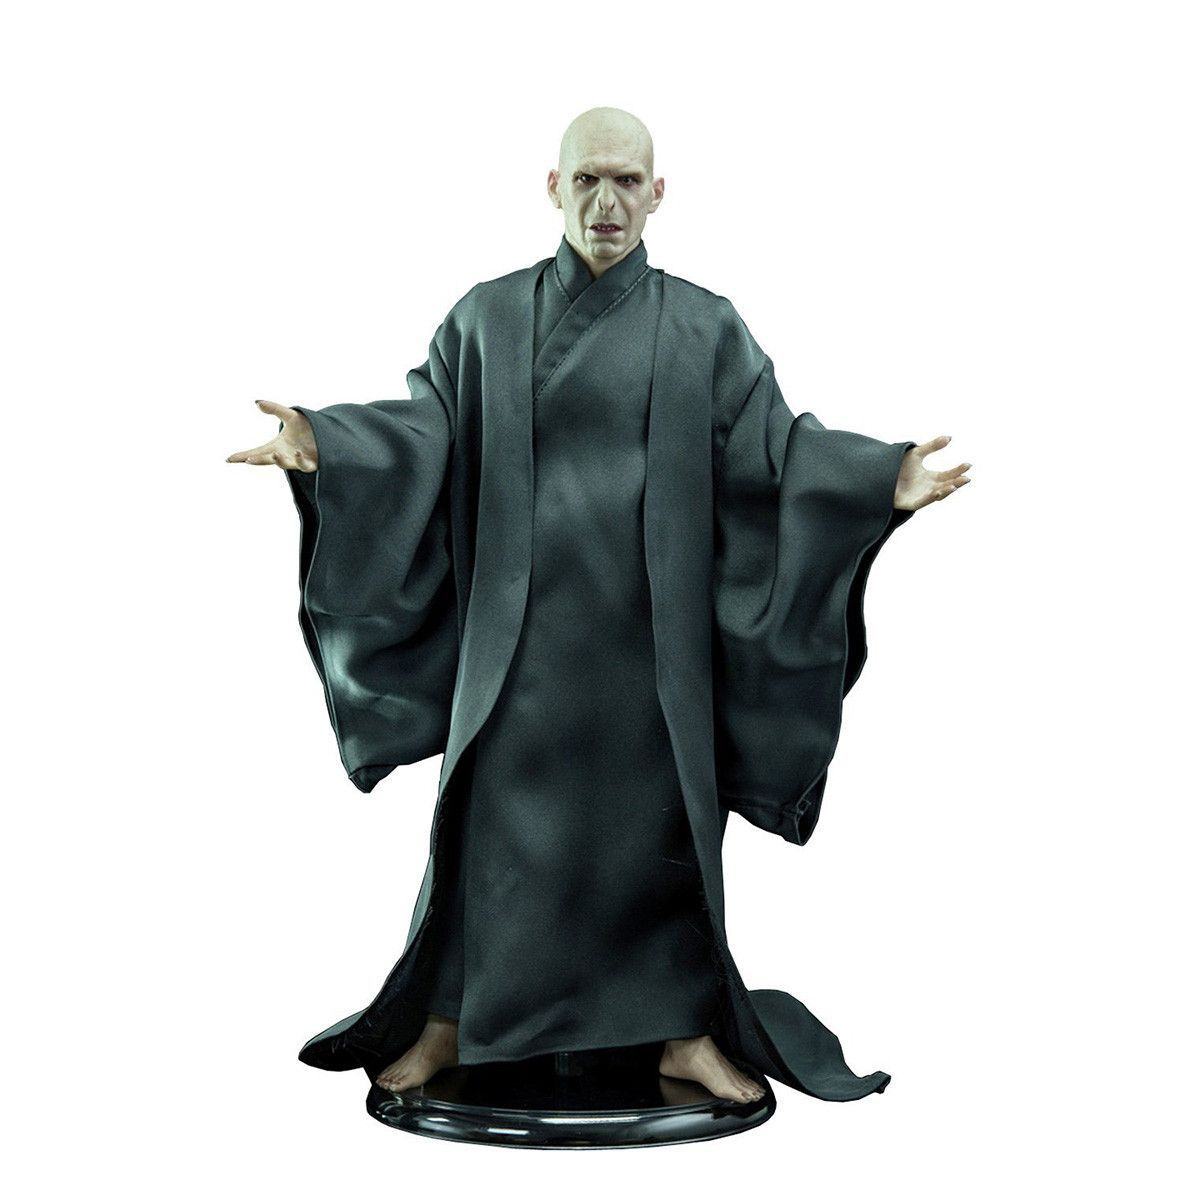 Harry Potter Toys : Harry potter and the deathly hallows lord voldemort